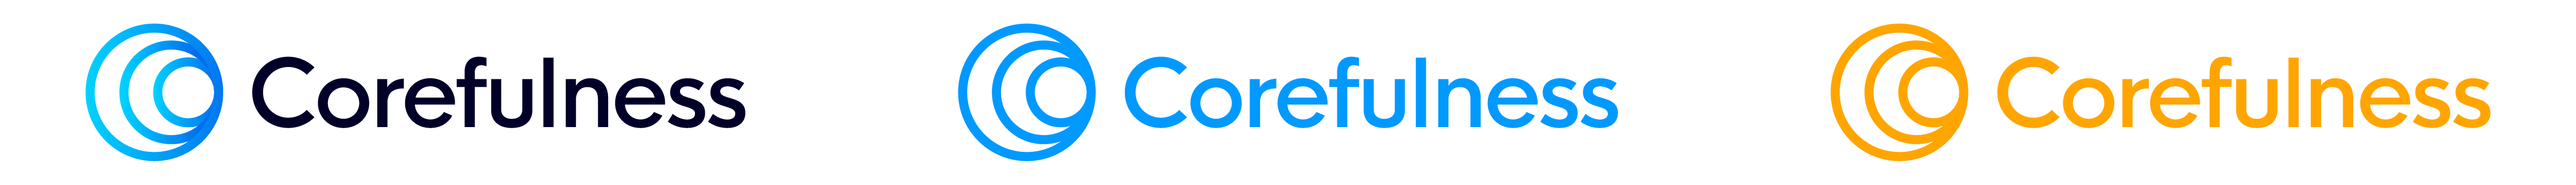 Corefulness-logo-set